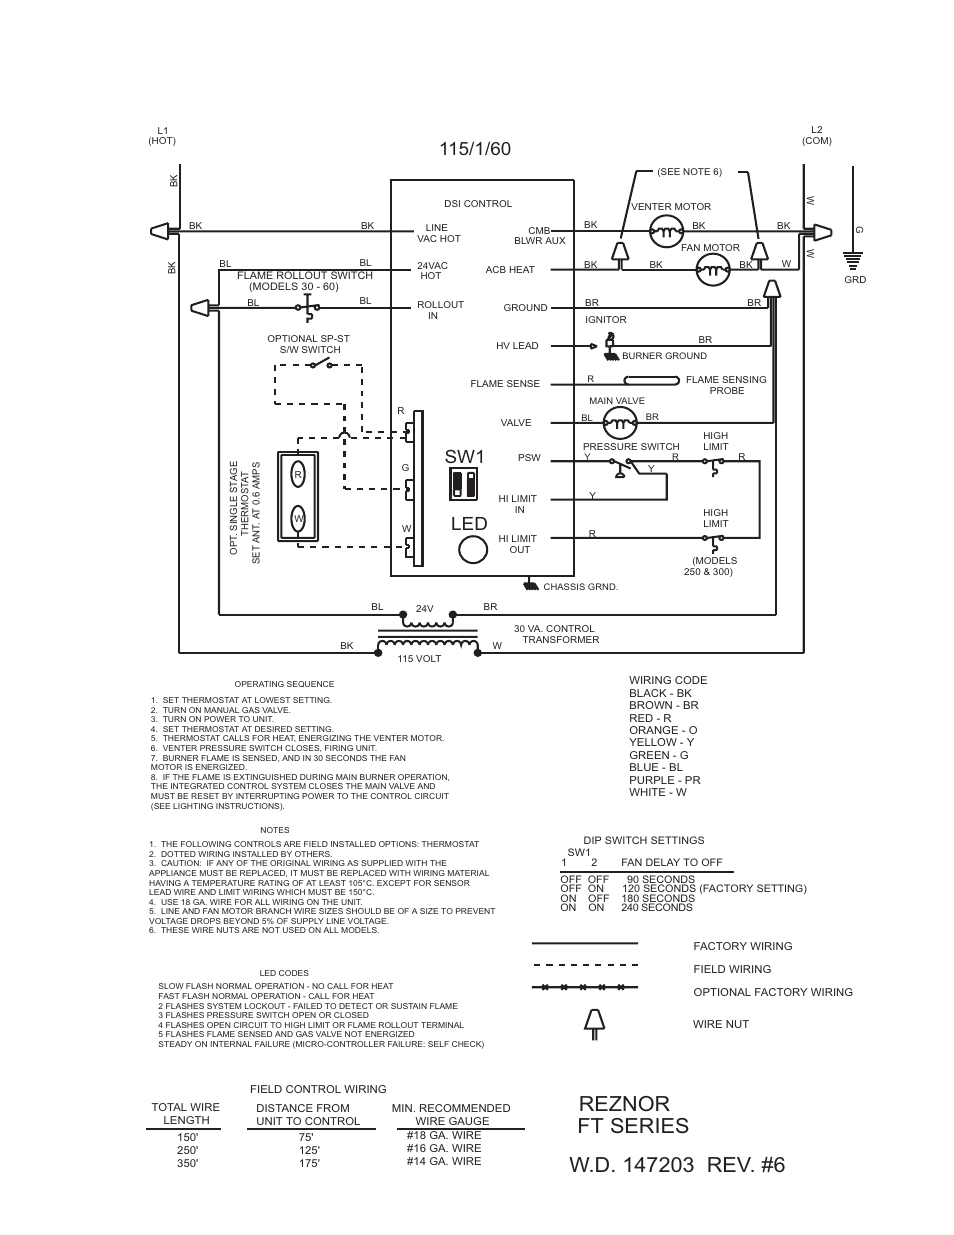 Payne Air Handler Wiring Diagram from www.manualsdir.com